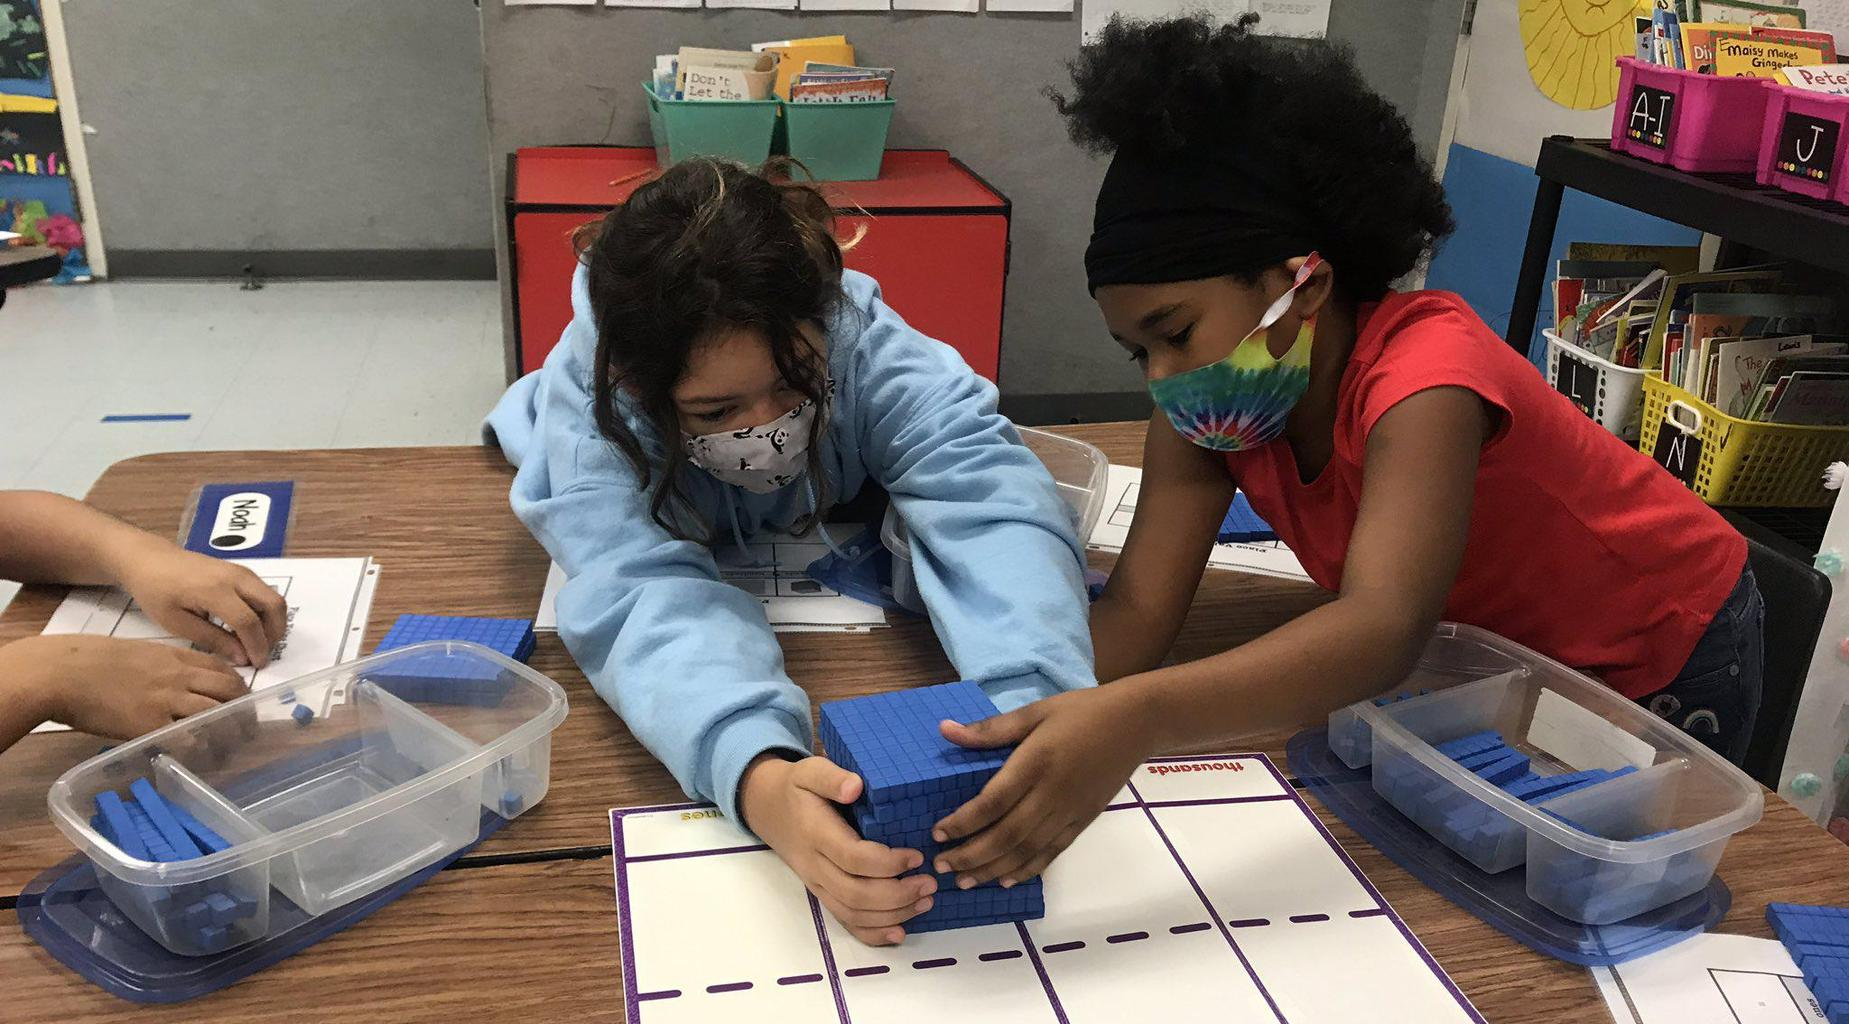 Glyndale Elementary students using plastic block manipulatives to learn place value.